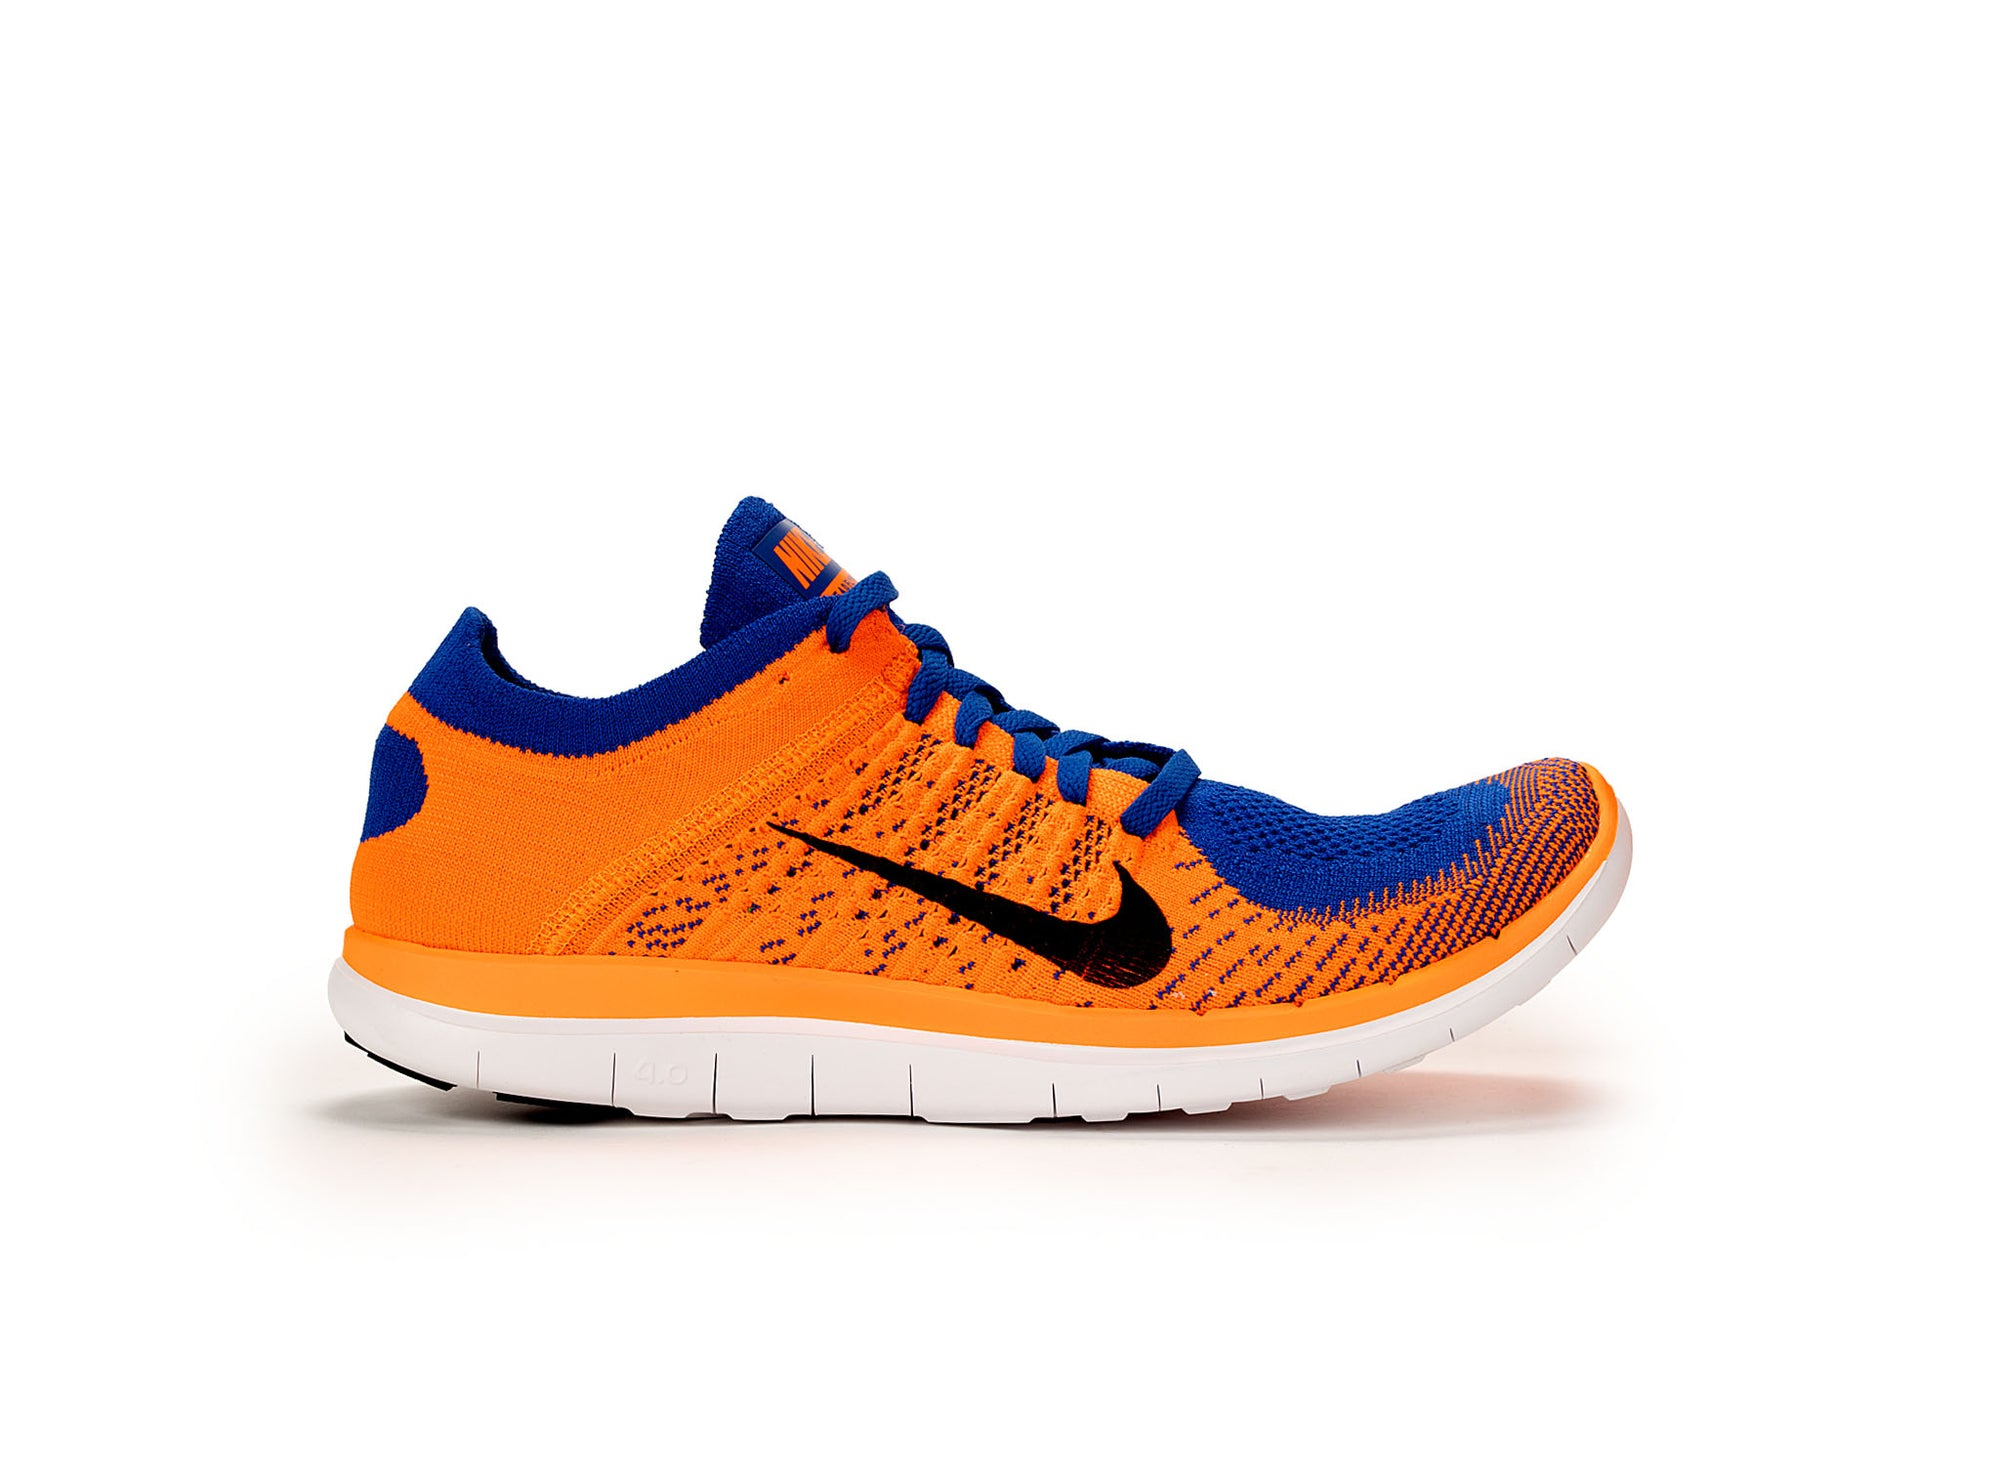 release date 41c1e f6bfb NIKE FREE 4.0 FLYKNIT